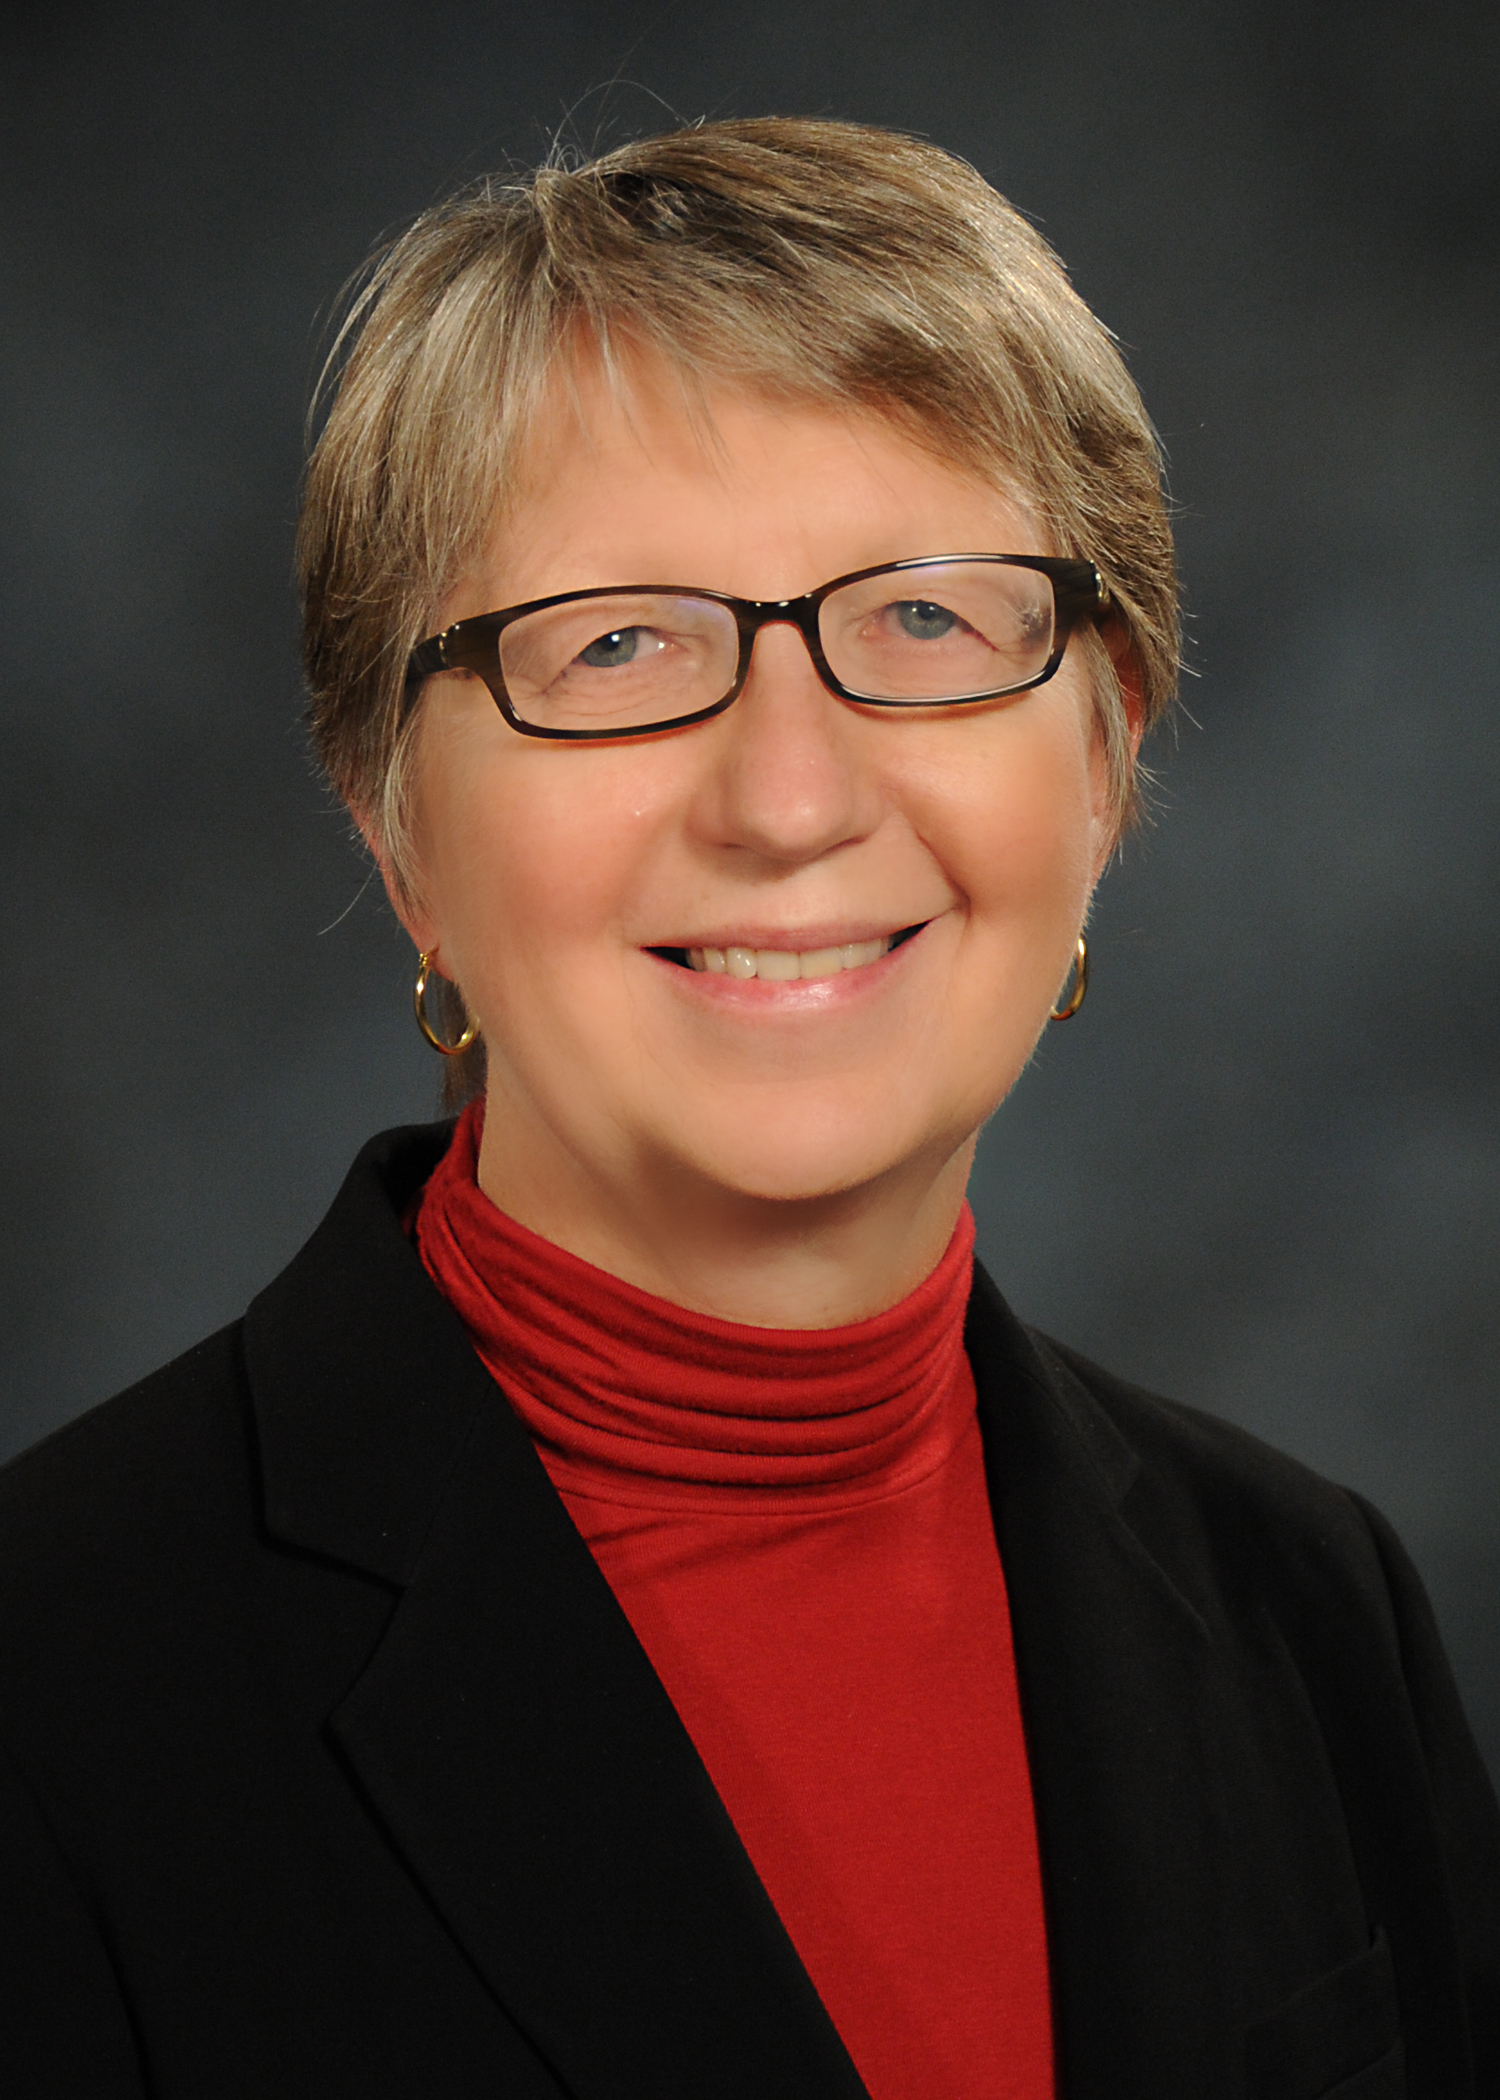 Professor receives Article of the Year distinction from Public Health Nursing journal